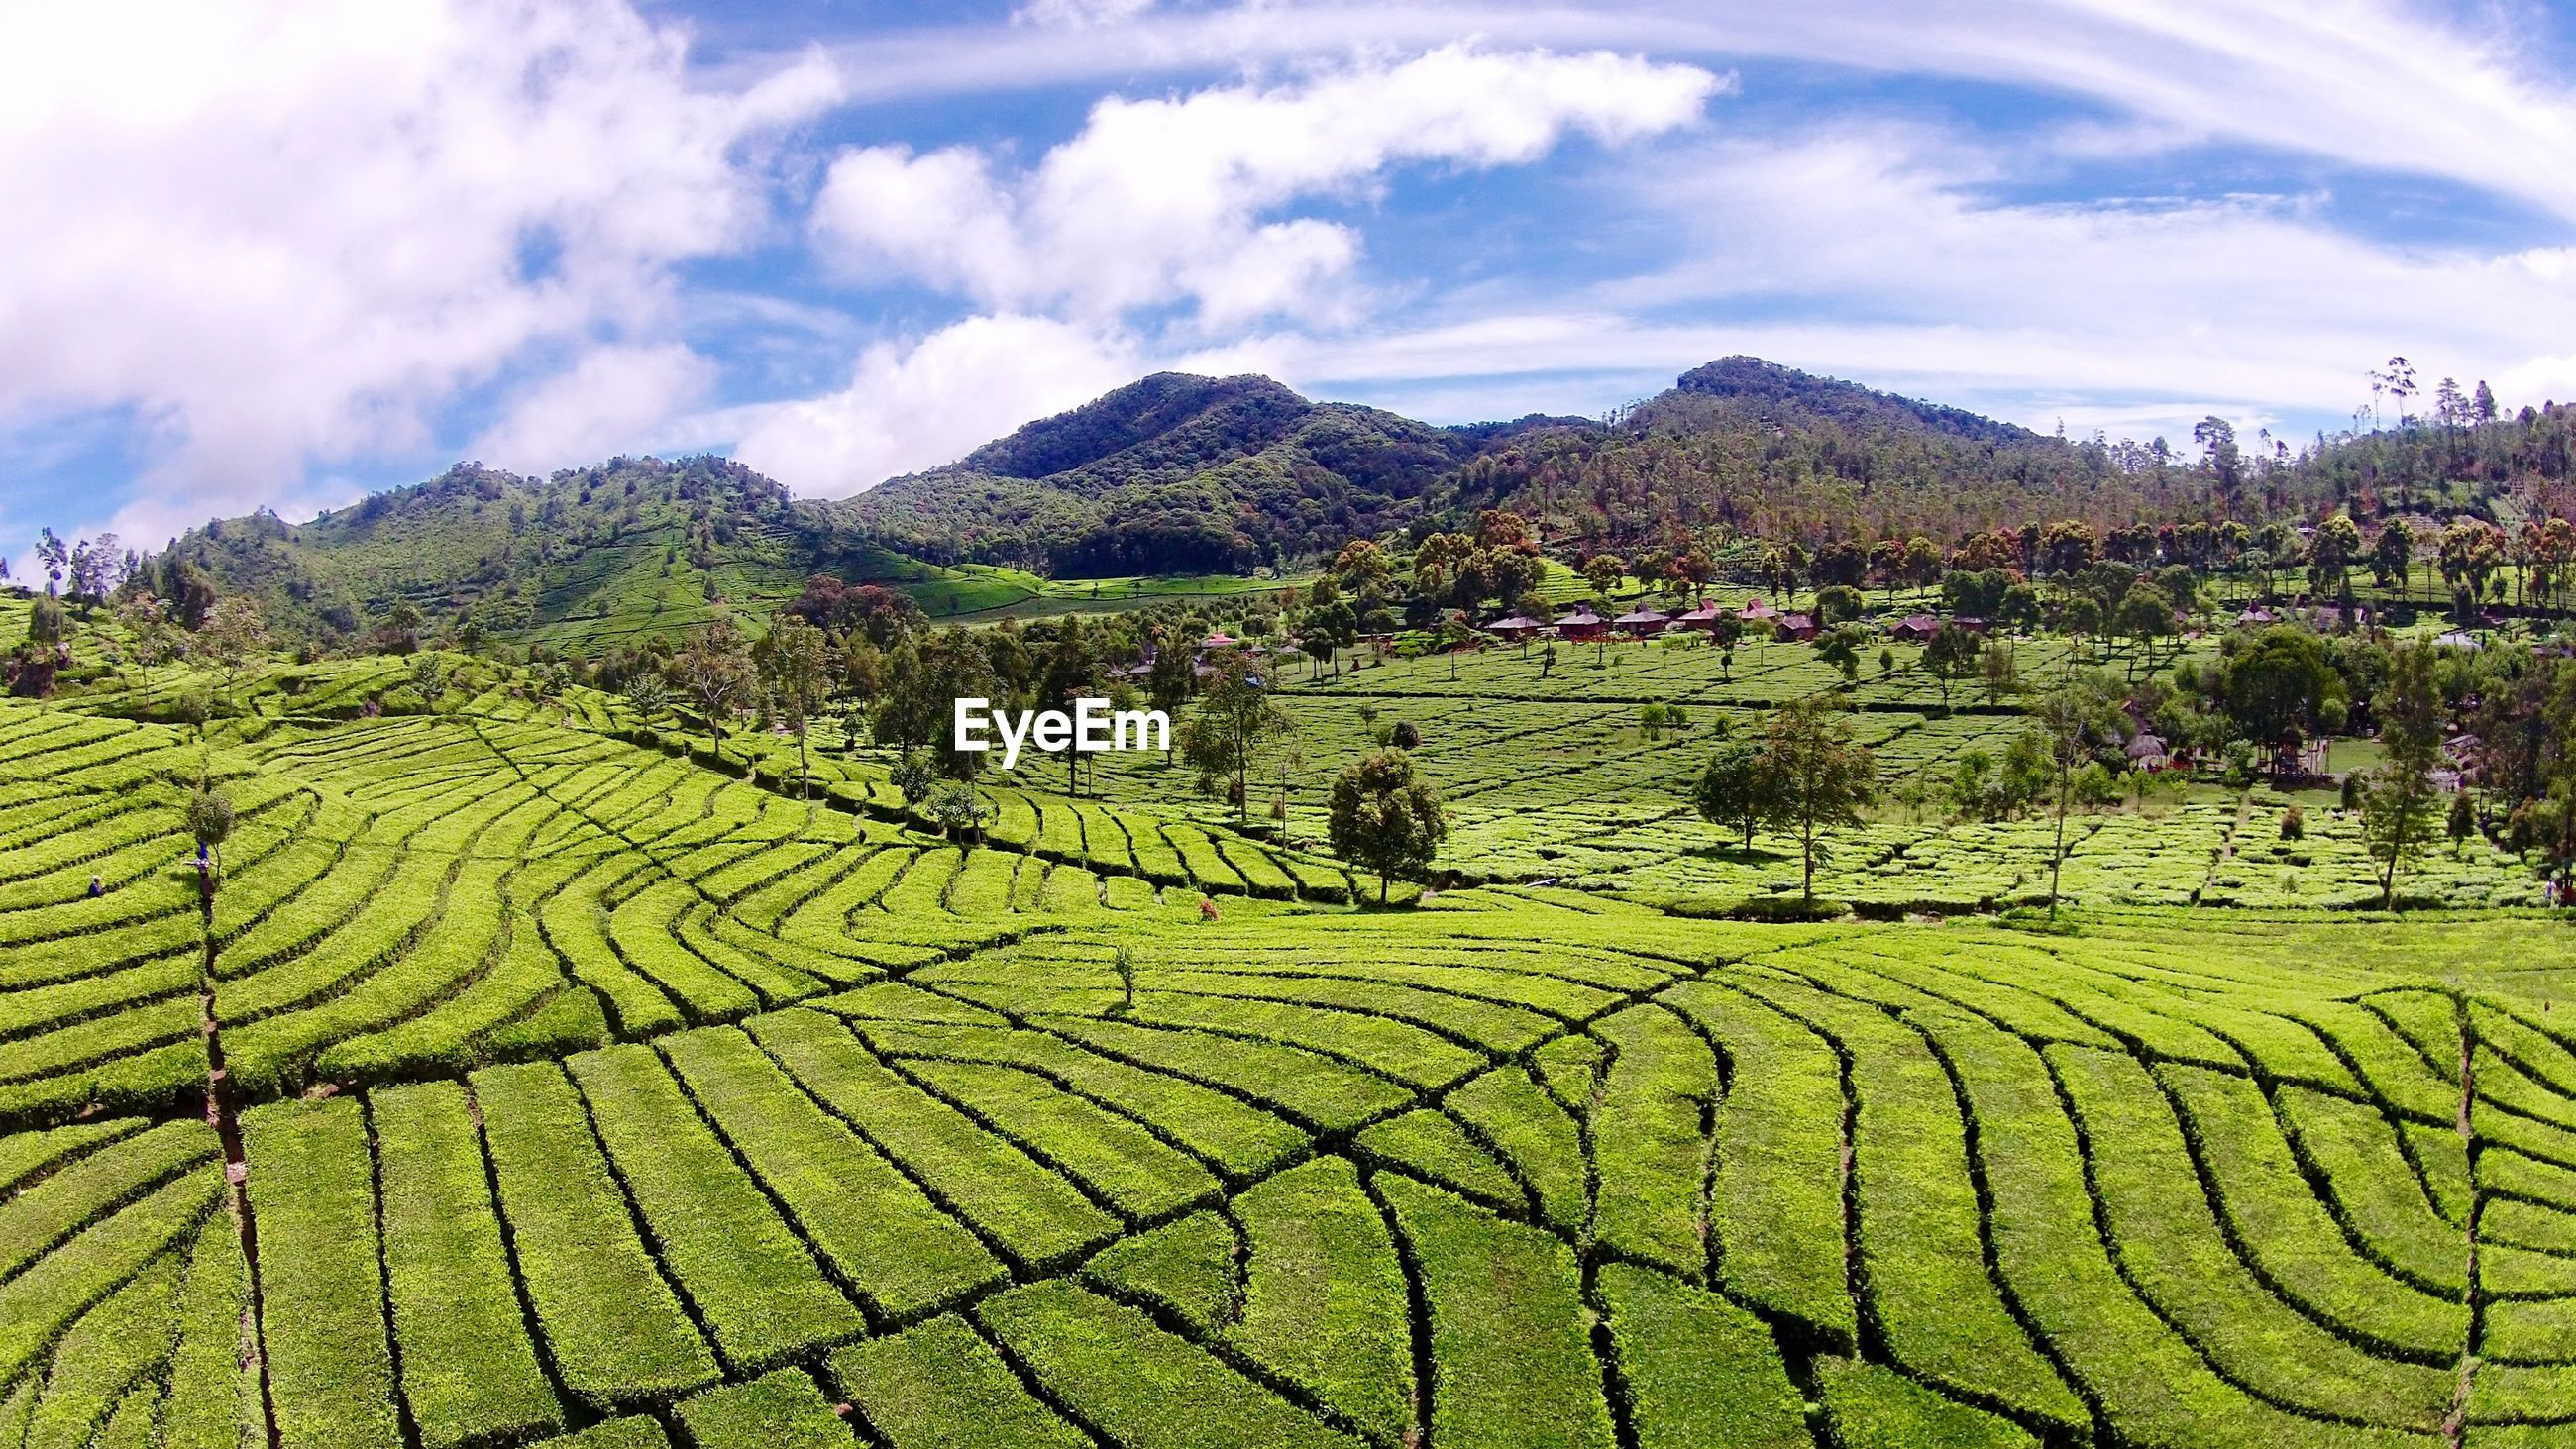 Scenic view of tea plantation by mountains against sky